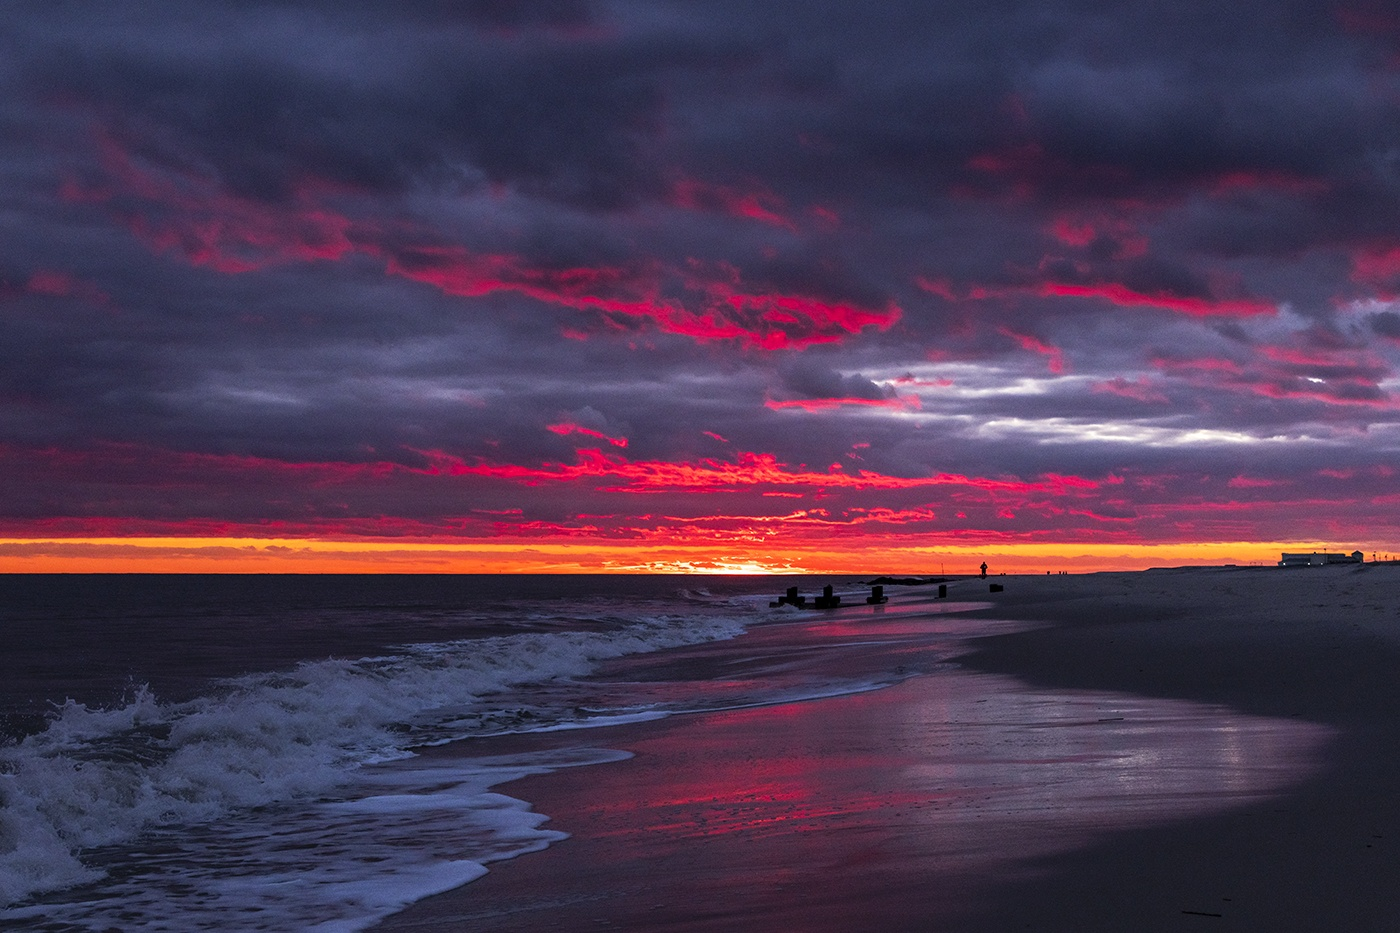 Bright pink colors in the clouds at sunset on a cloudy day with waves crashing